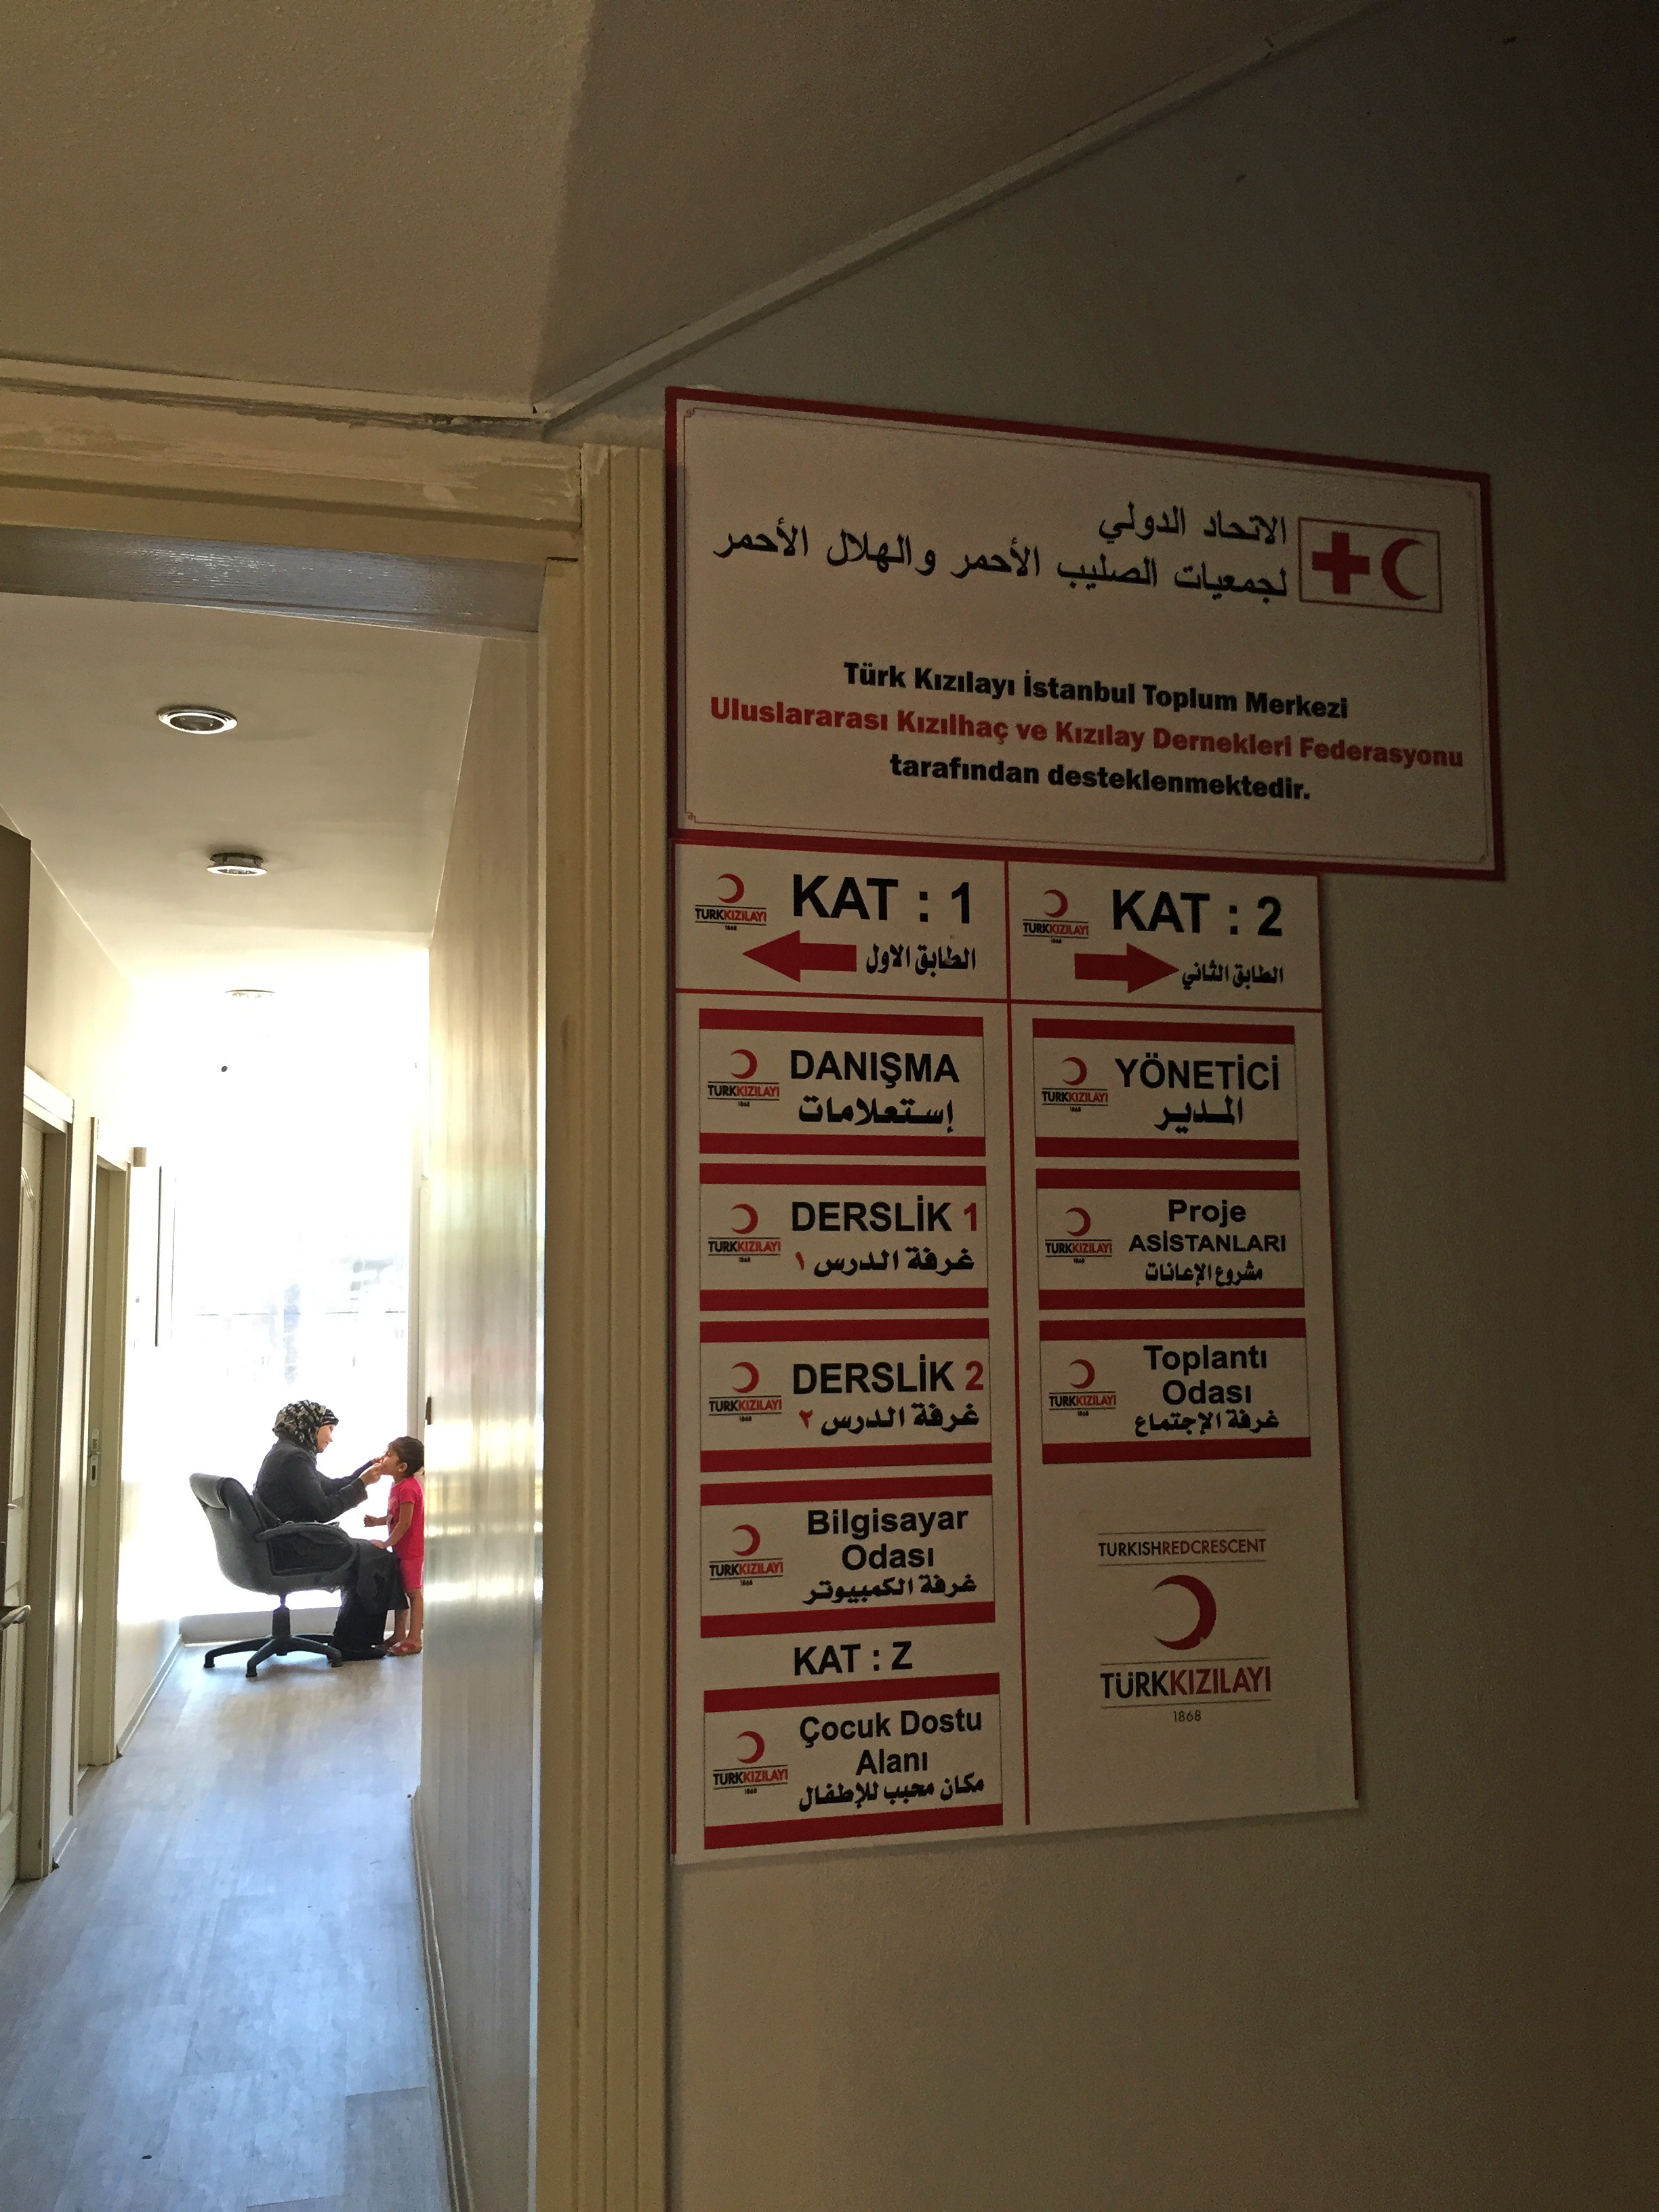 Supported by international donors, Sultanbeyli's healthcare clinics have been developed to provide services to both refugees and resident Turks in the neighborhood. Photo by author.